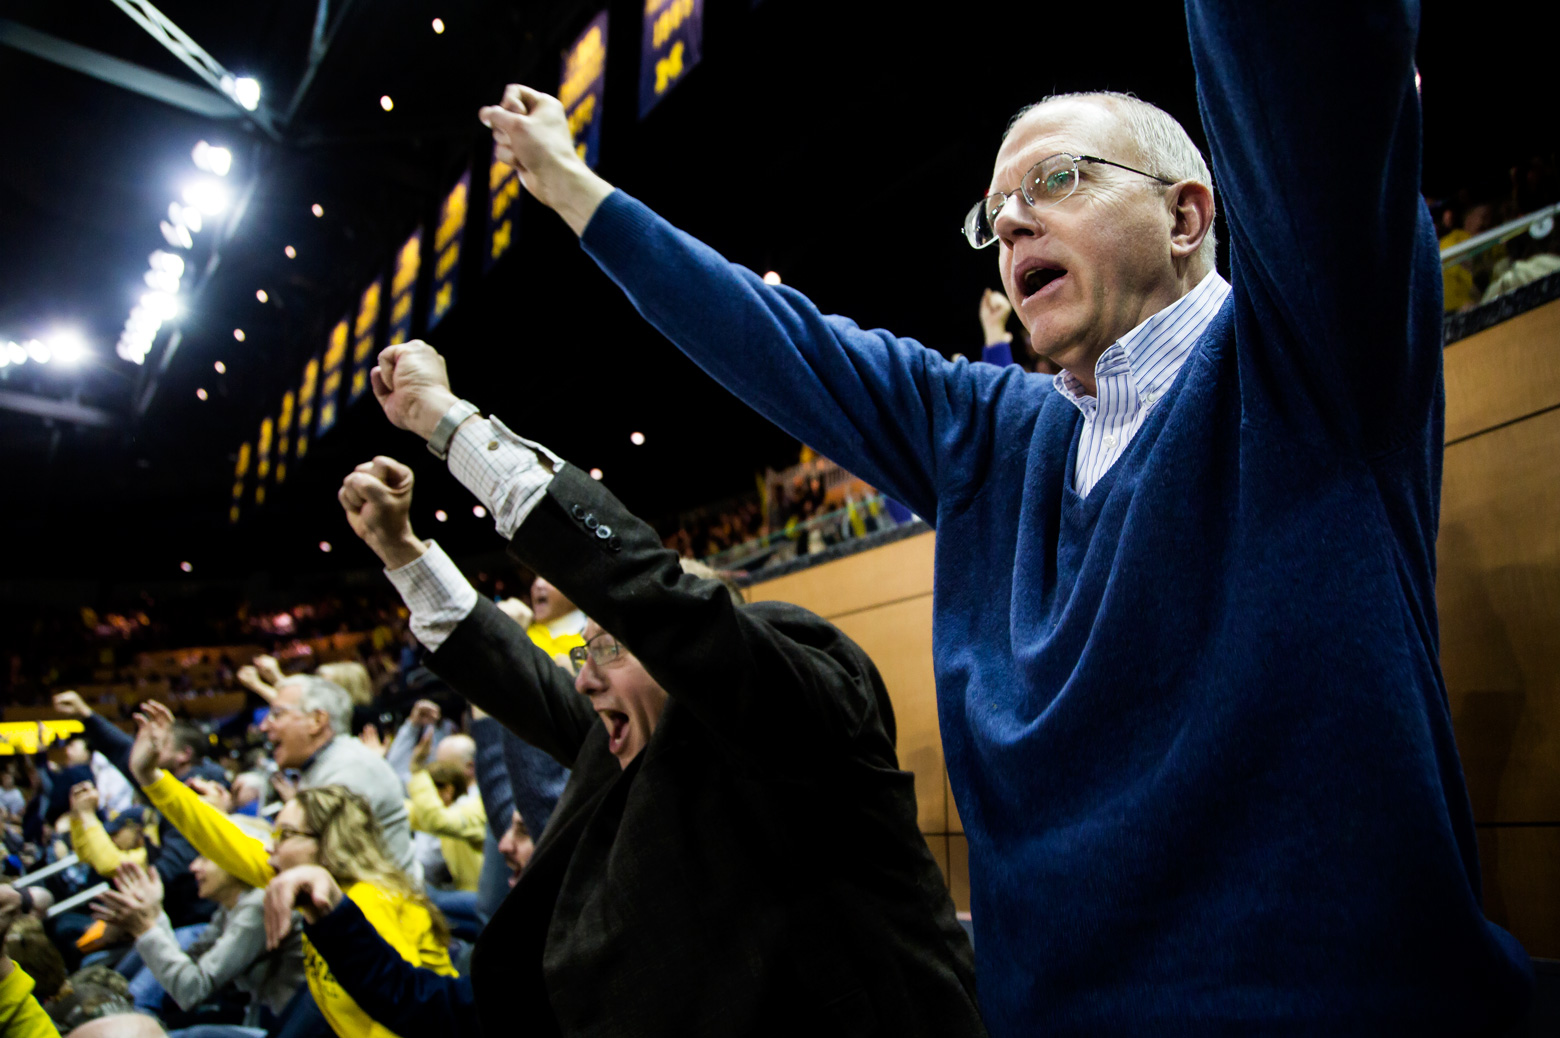 Dave Munson celebrating a Michigan basketball victory with Michigan Engineering alumnus Randy Brouckman